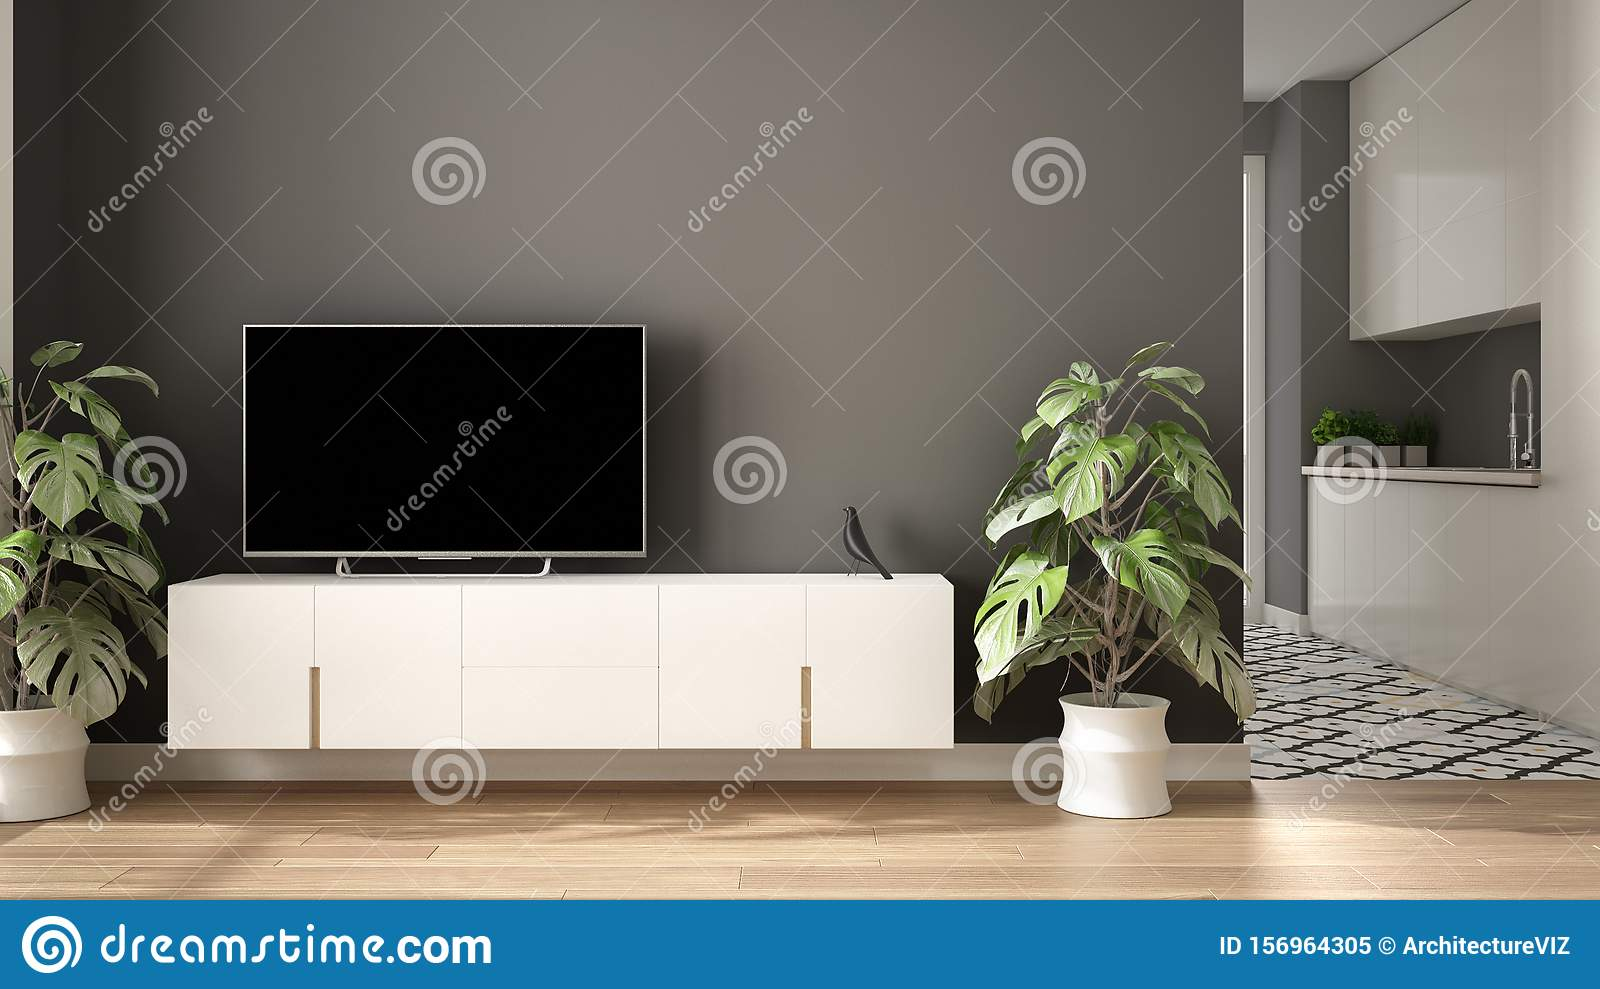 Living Room Tv Stock Illustrations 5 976 Living Room Tv Stock Illustrations Vectors Clipart Dreamstime